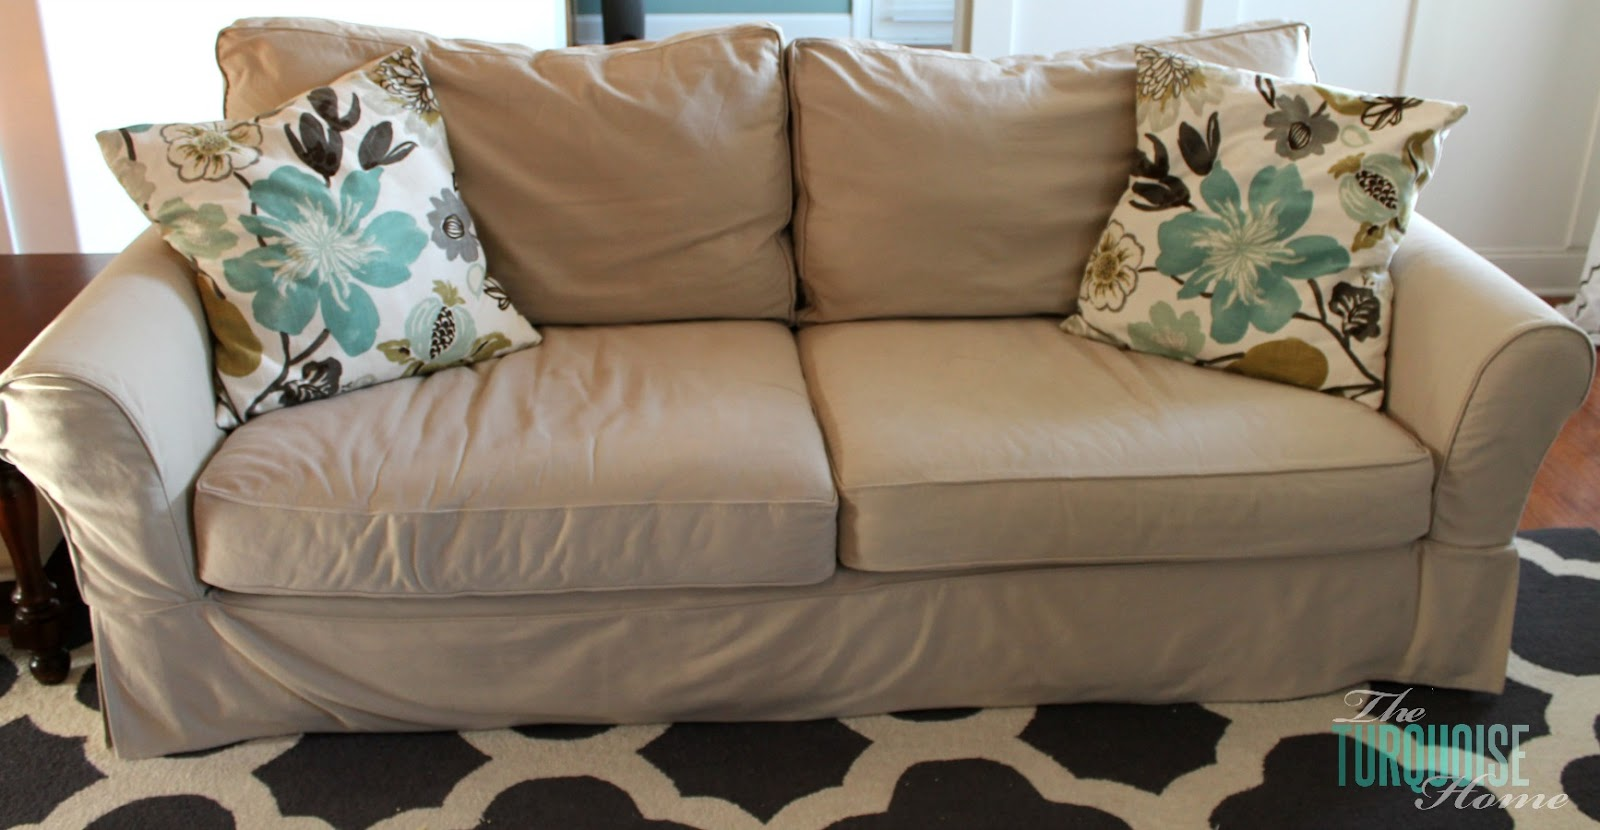 Diy couch pillows